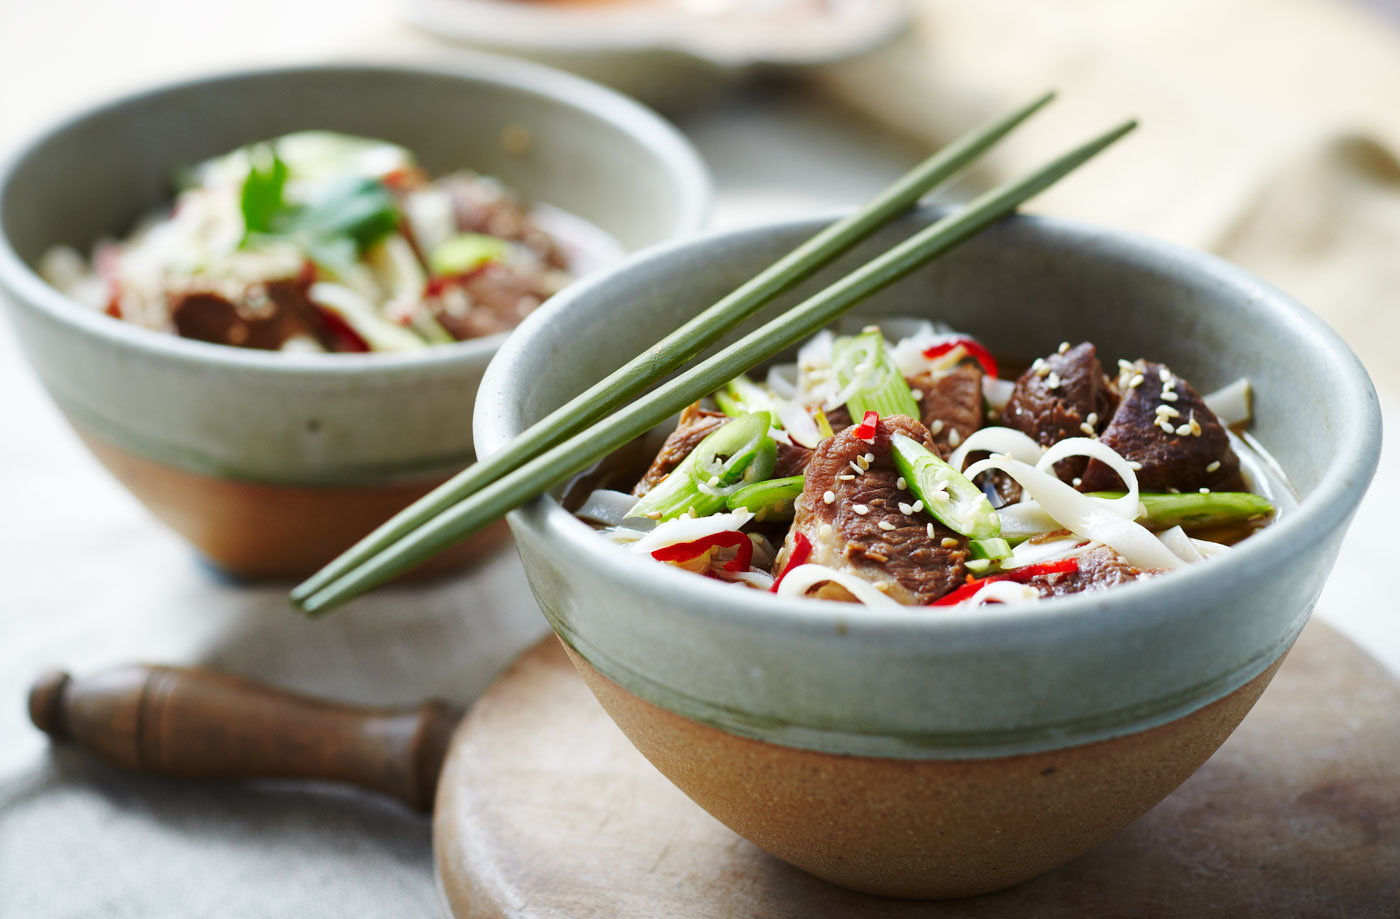 Slow cooker recipes crock pot recipes tesco real food slow cooker braised chinese pork forumfinder Images